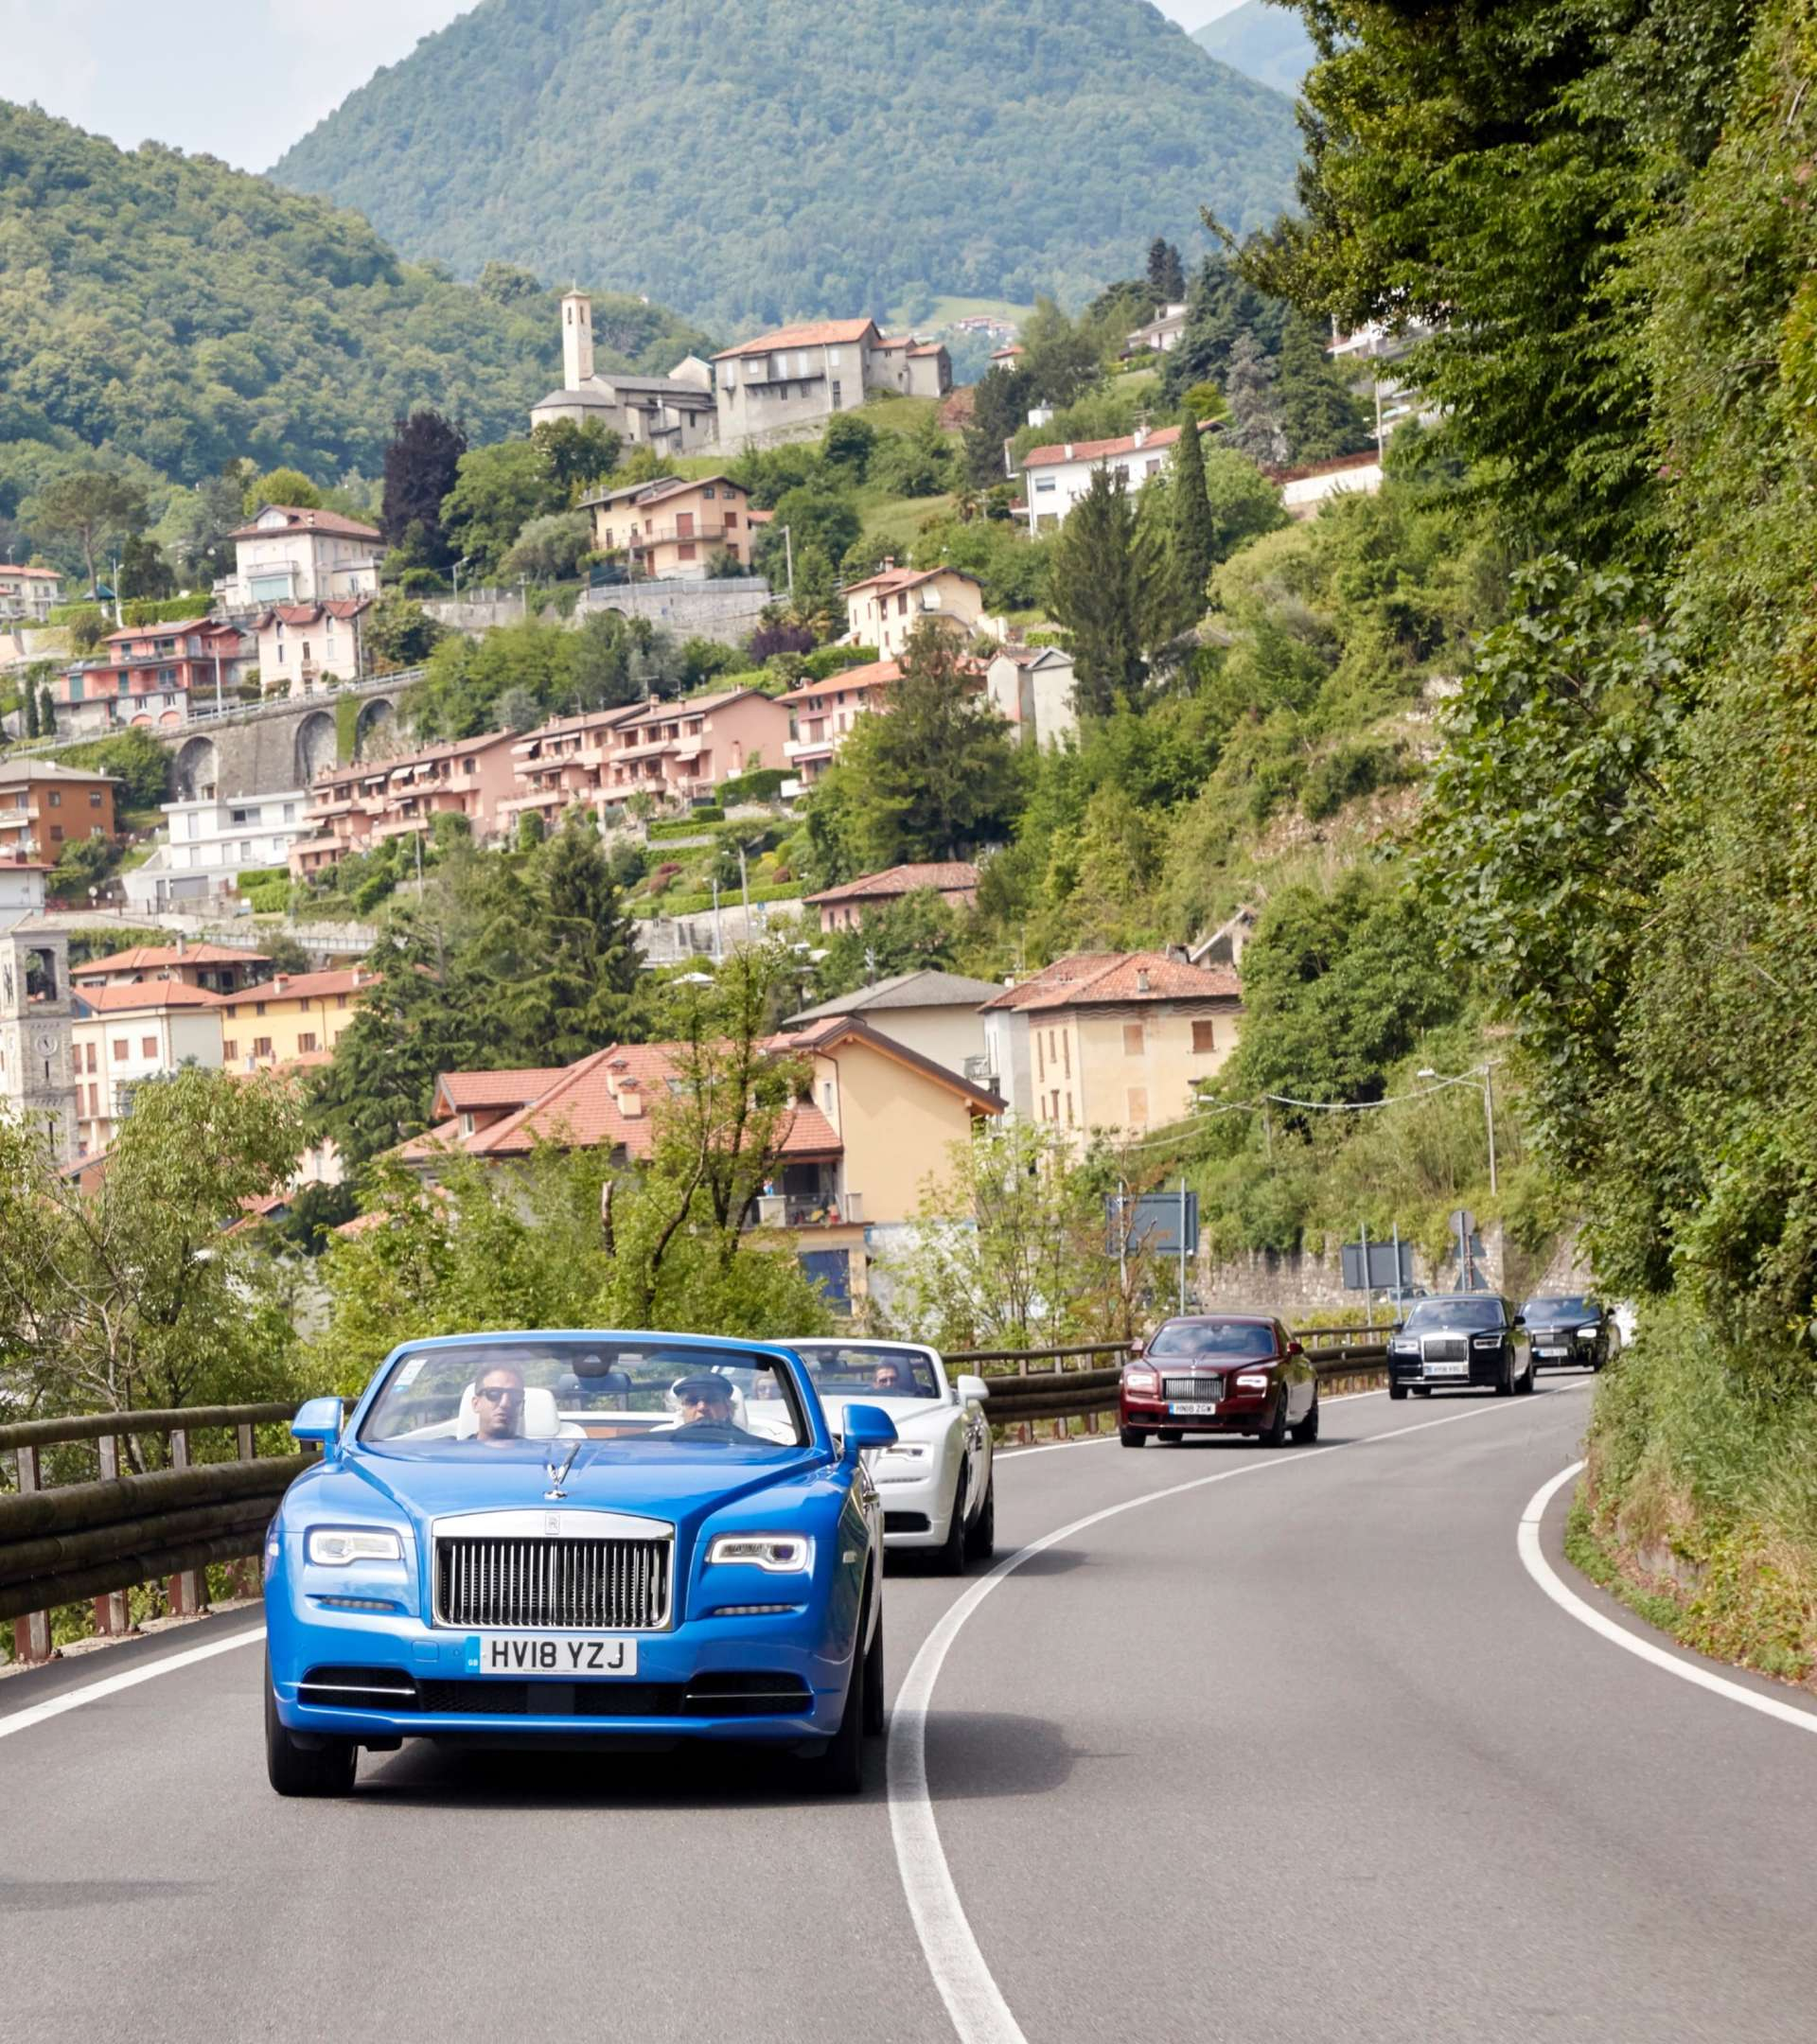 rolls-royce's driving though italian country side